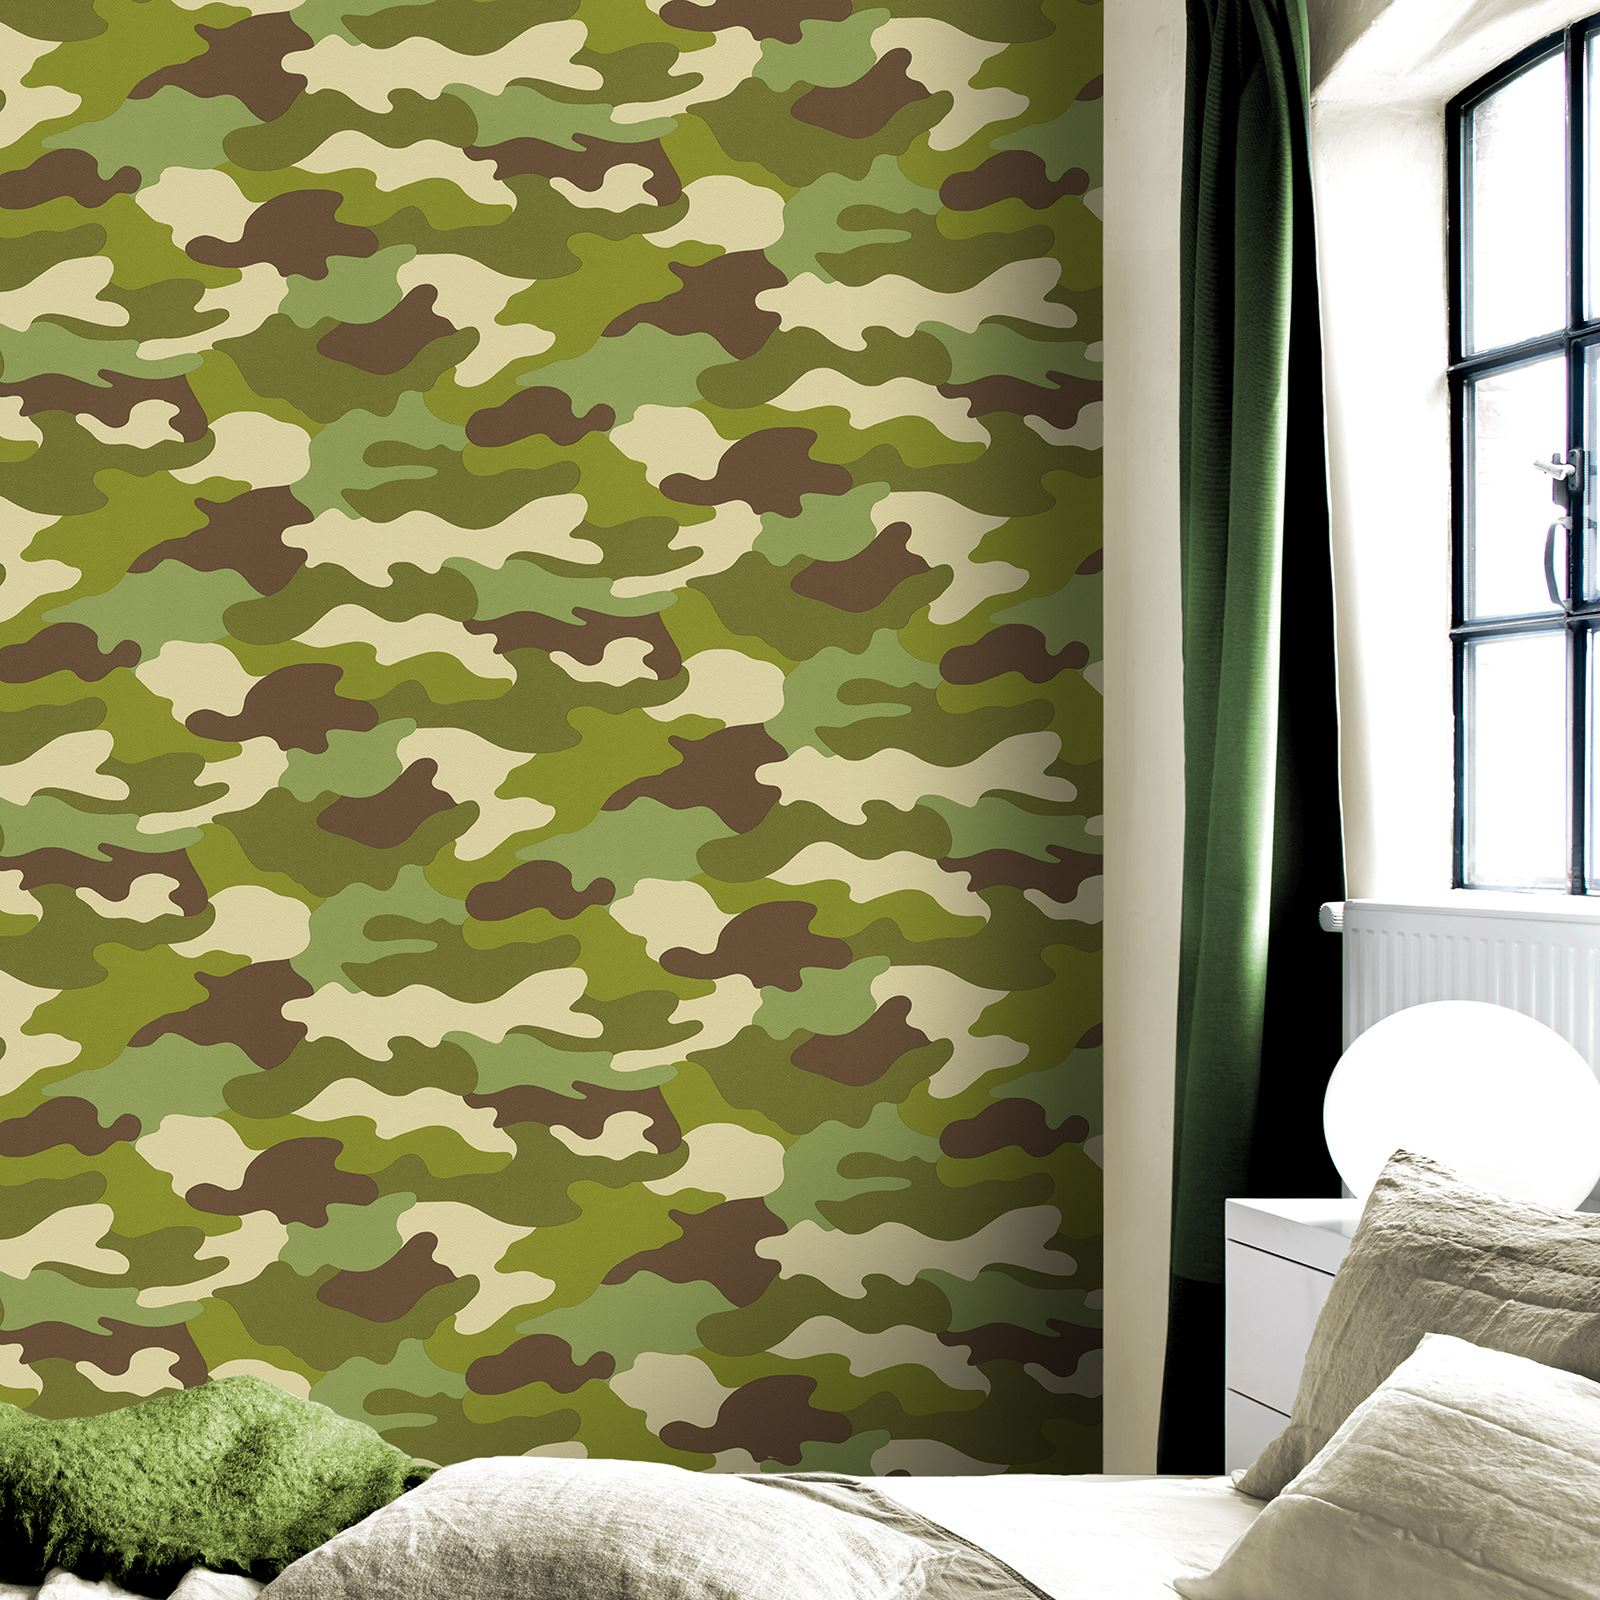 Boys Bedroom Wallpaper Kids Teens Space Camo Football - Roll Army Camouflage Camo Wallpaper Kids Bedroom - HD Wallpaper